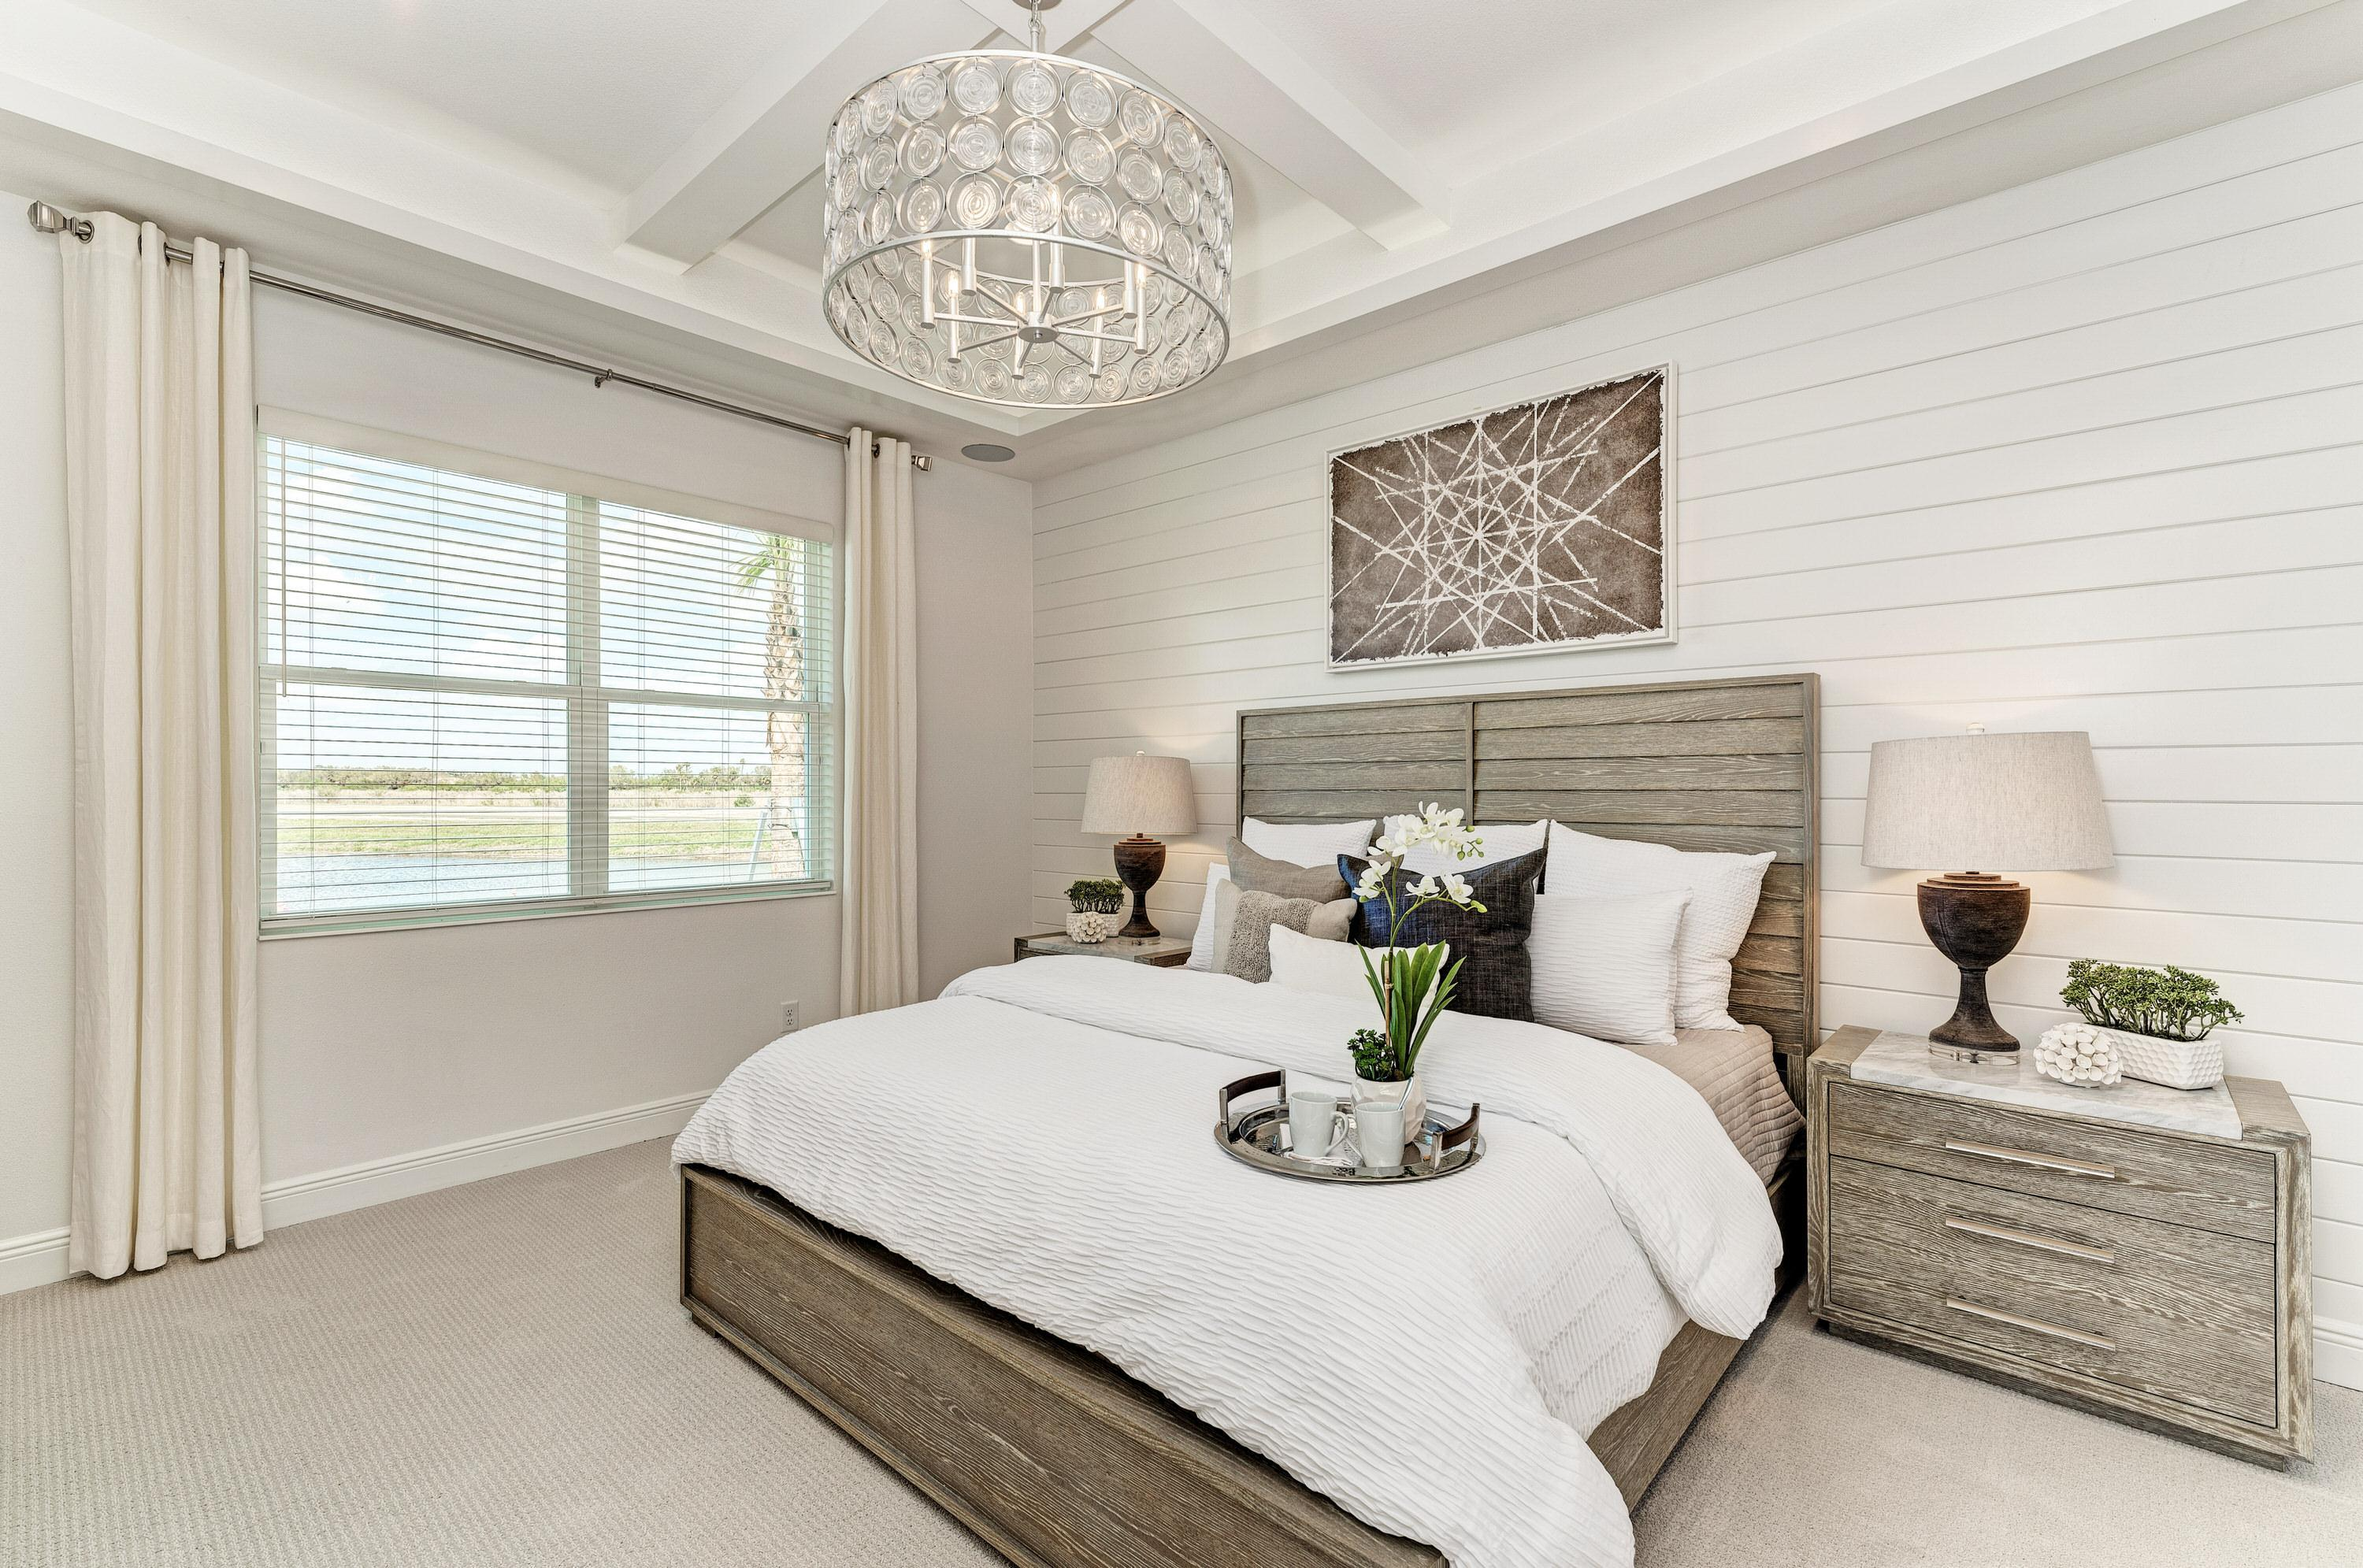 Bedroom featured in the Paradise Villa Home By Medallion Home in Sarasota-Bradenton, FL